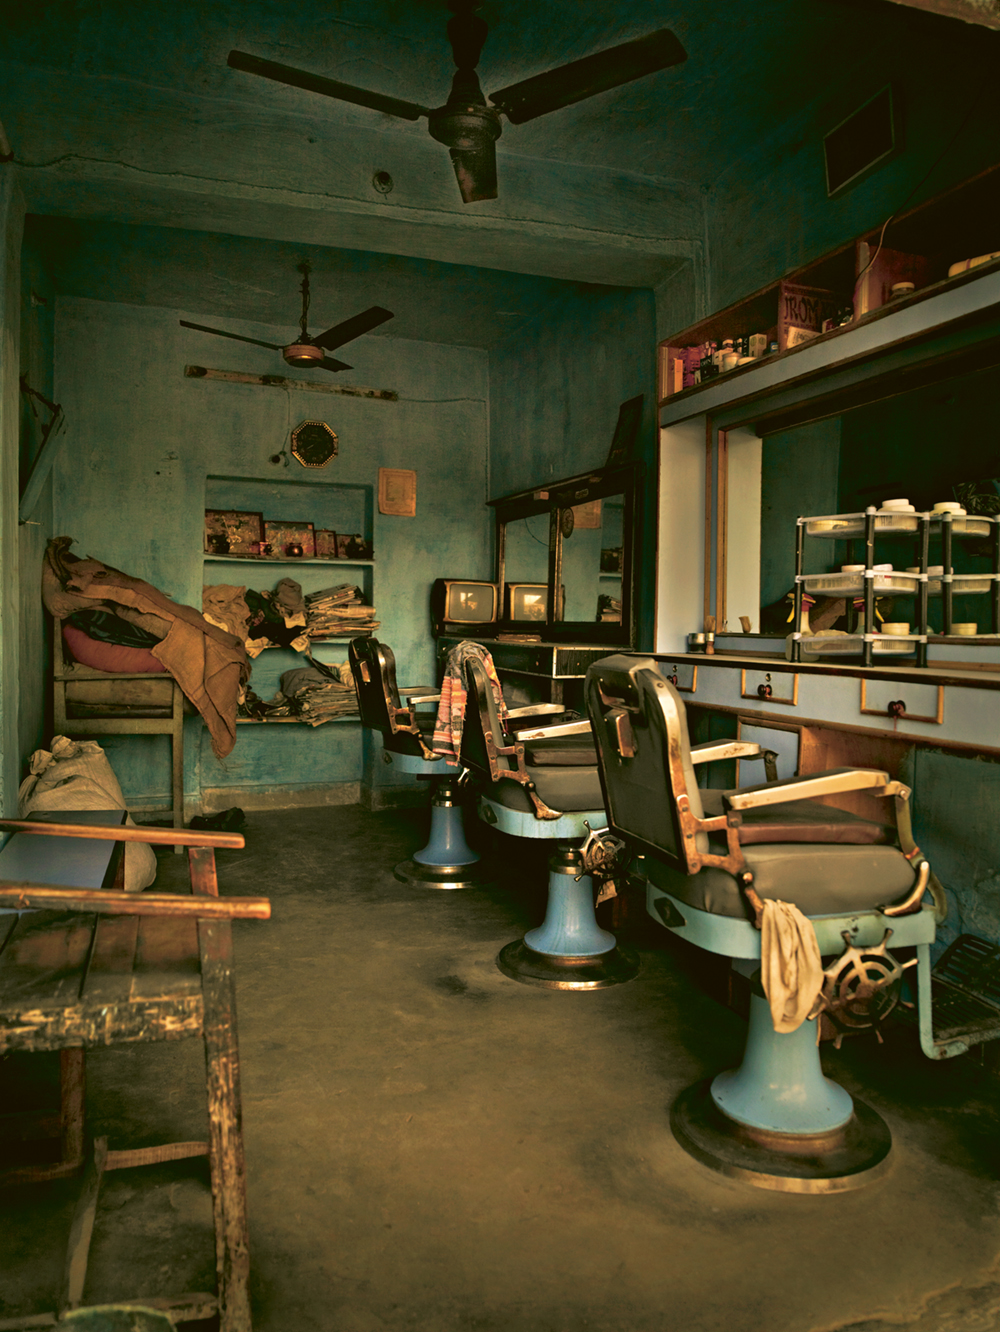 Barbershop in India. Photo © Andreas H. Bitesnich. All rights reserved. Come discover 3 Inspiring Art & Design Books on My Nightstand This Minute I Am Loving!